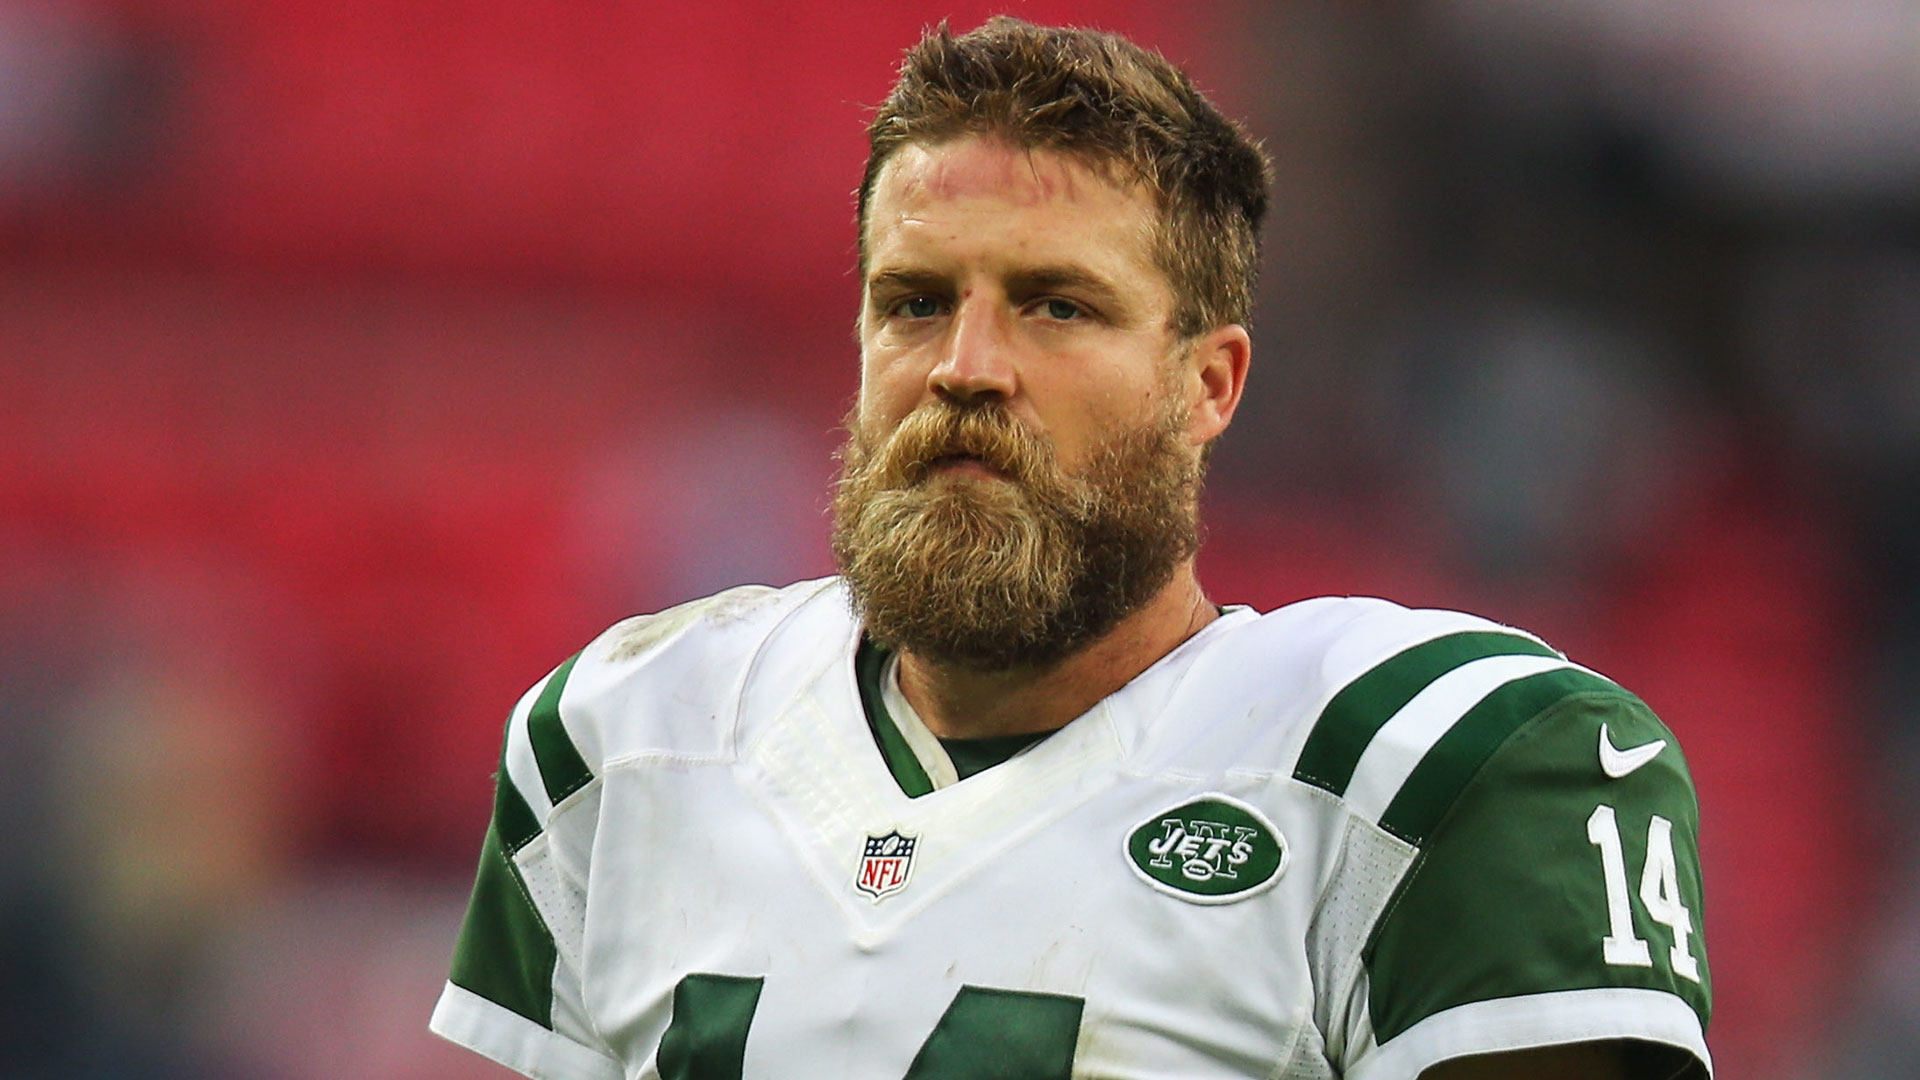 low priced 802fa e2c5c Ryan Fitzpatrick got videobombed by Nick Mangold and it was ...